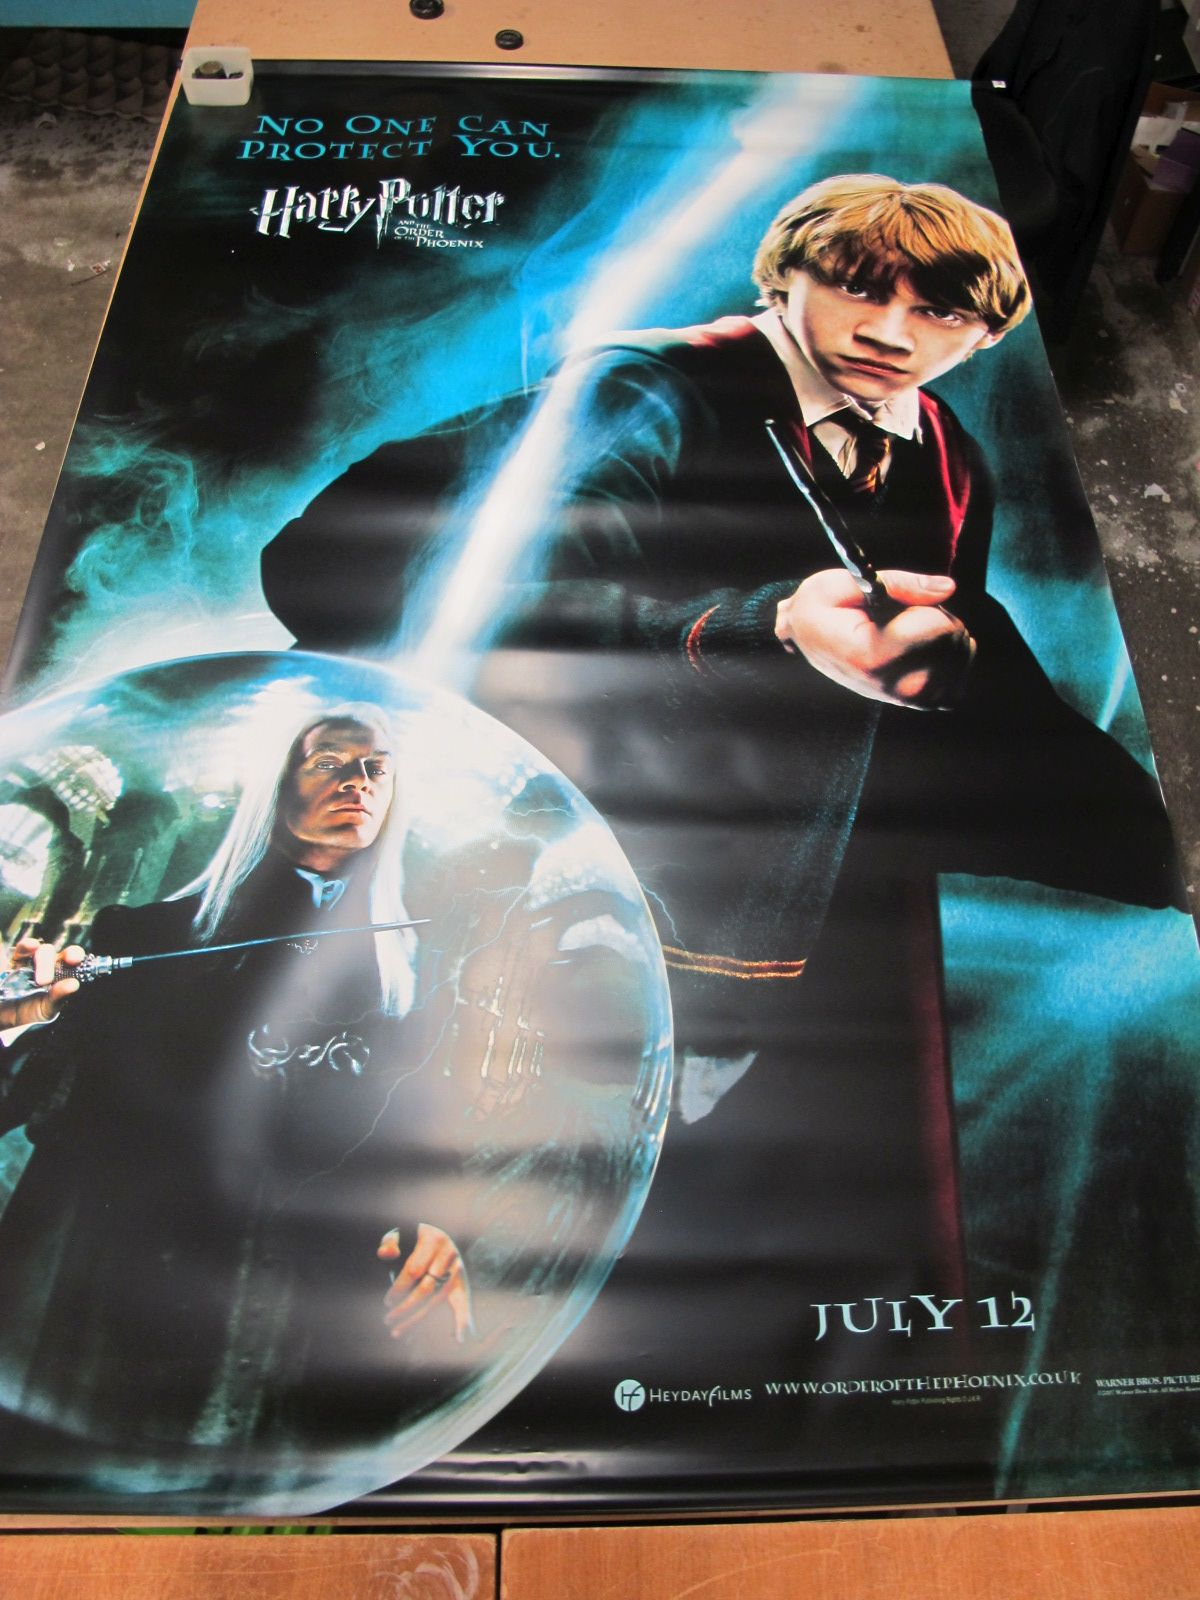 Harry Potter and The Order of The Pheonix Large Lobby Poster, featuring Ron Weasley, approximately